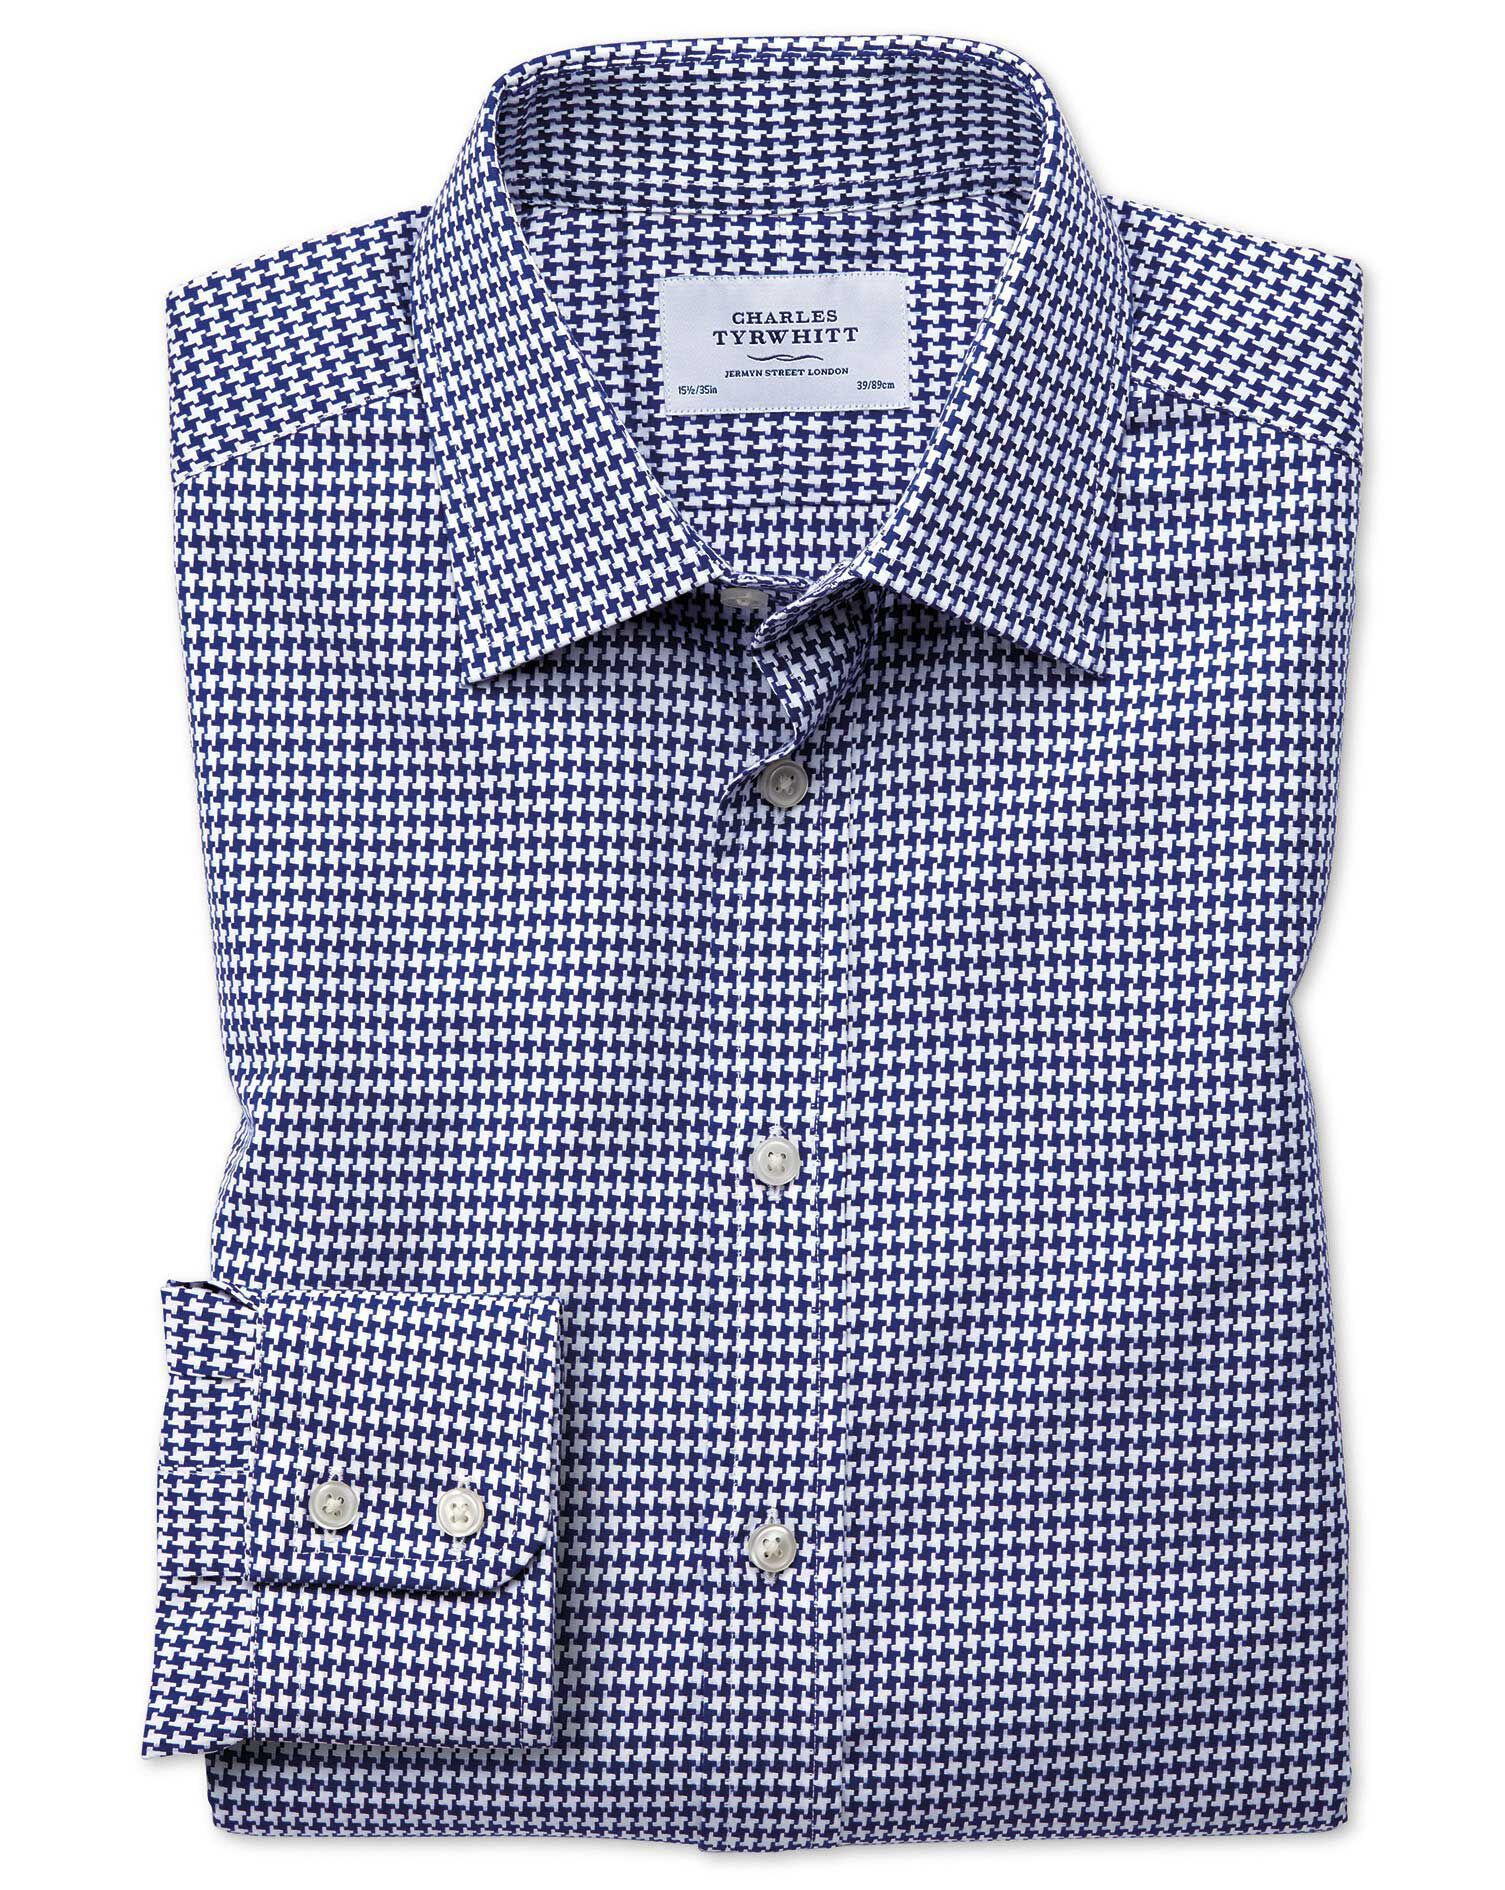 Classic Fit Large Puppytooth Blue Cotton Formal Shirt Single Cuff Size 18/37 by Charles Tyrwhitt